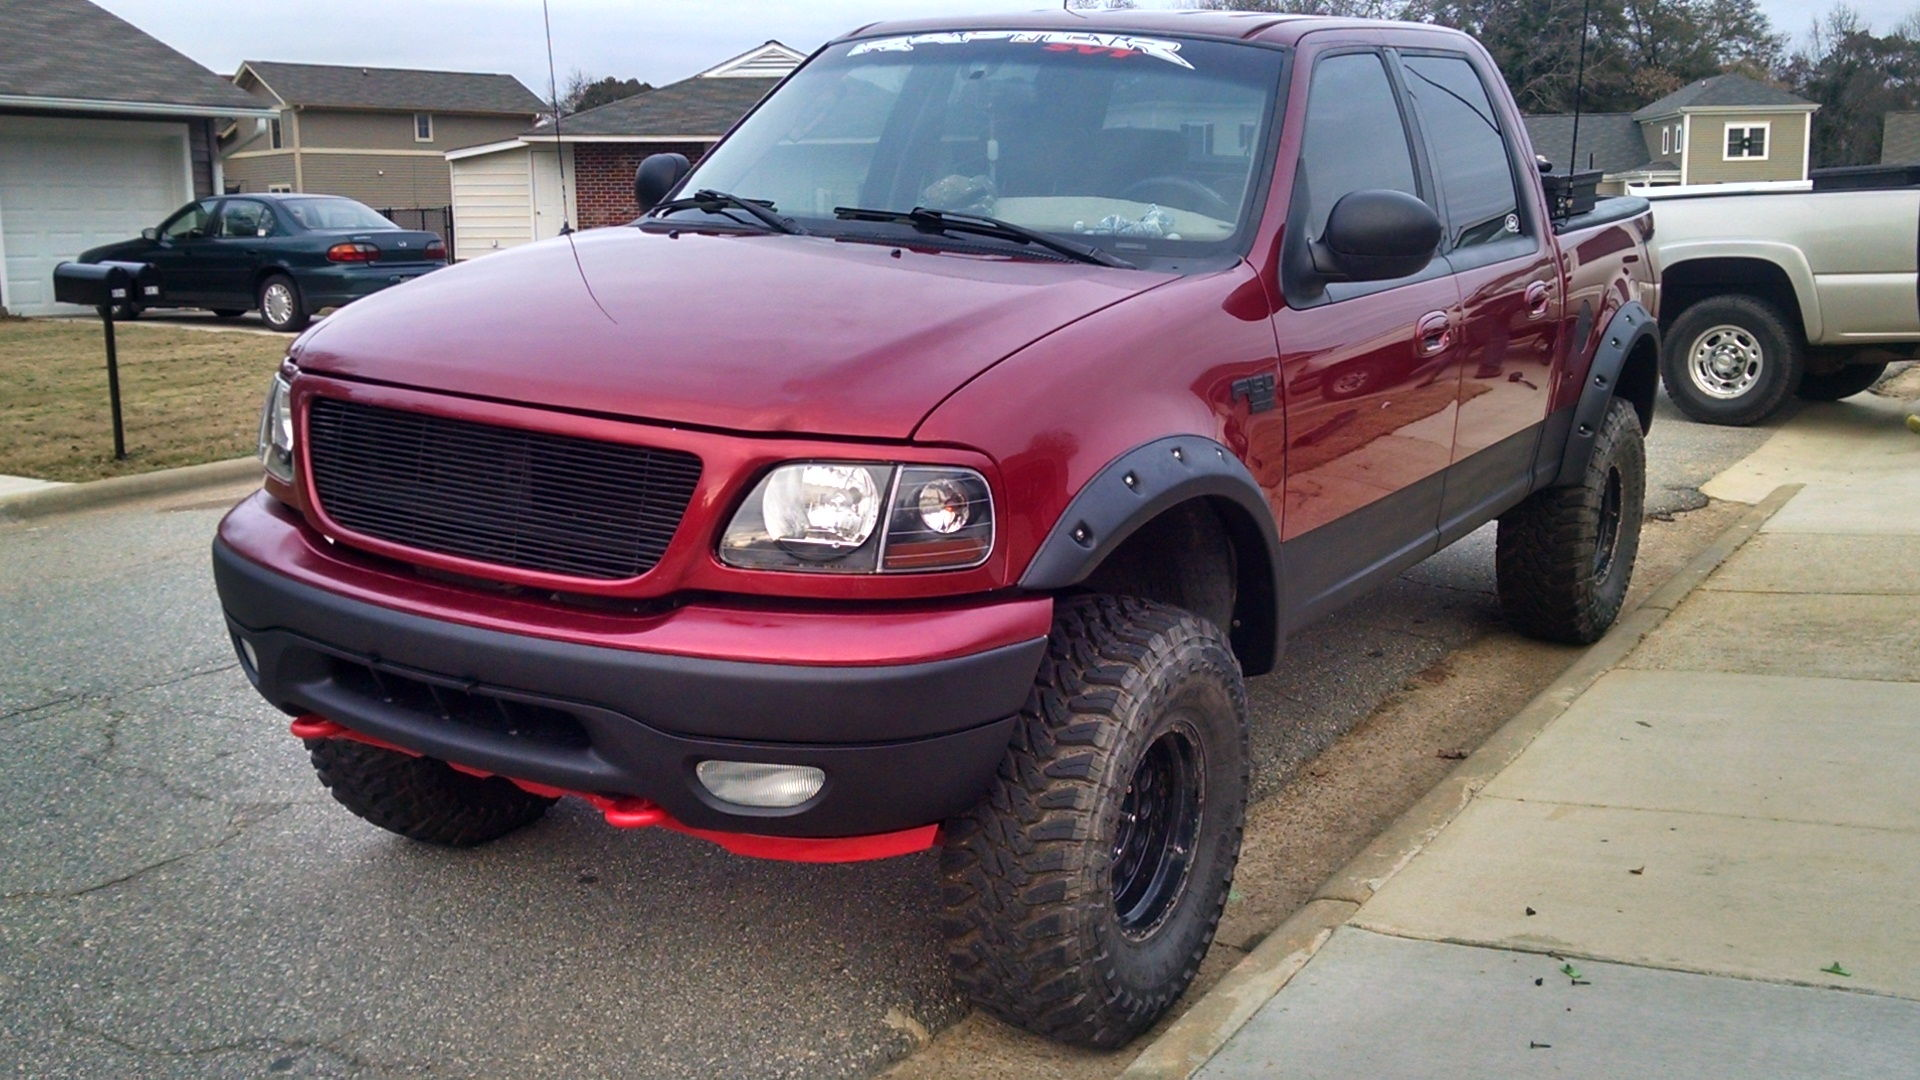 463799 2010 White Lariat New Rims Tires moreover Car Battery Dead Overnight also 1394082 Bed Bolts likewise Forum posts likewise 179139 2004 Fx4 Lobo Mexico Edition. on 2003 f150 starter location